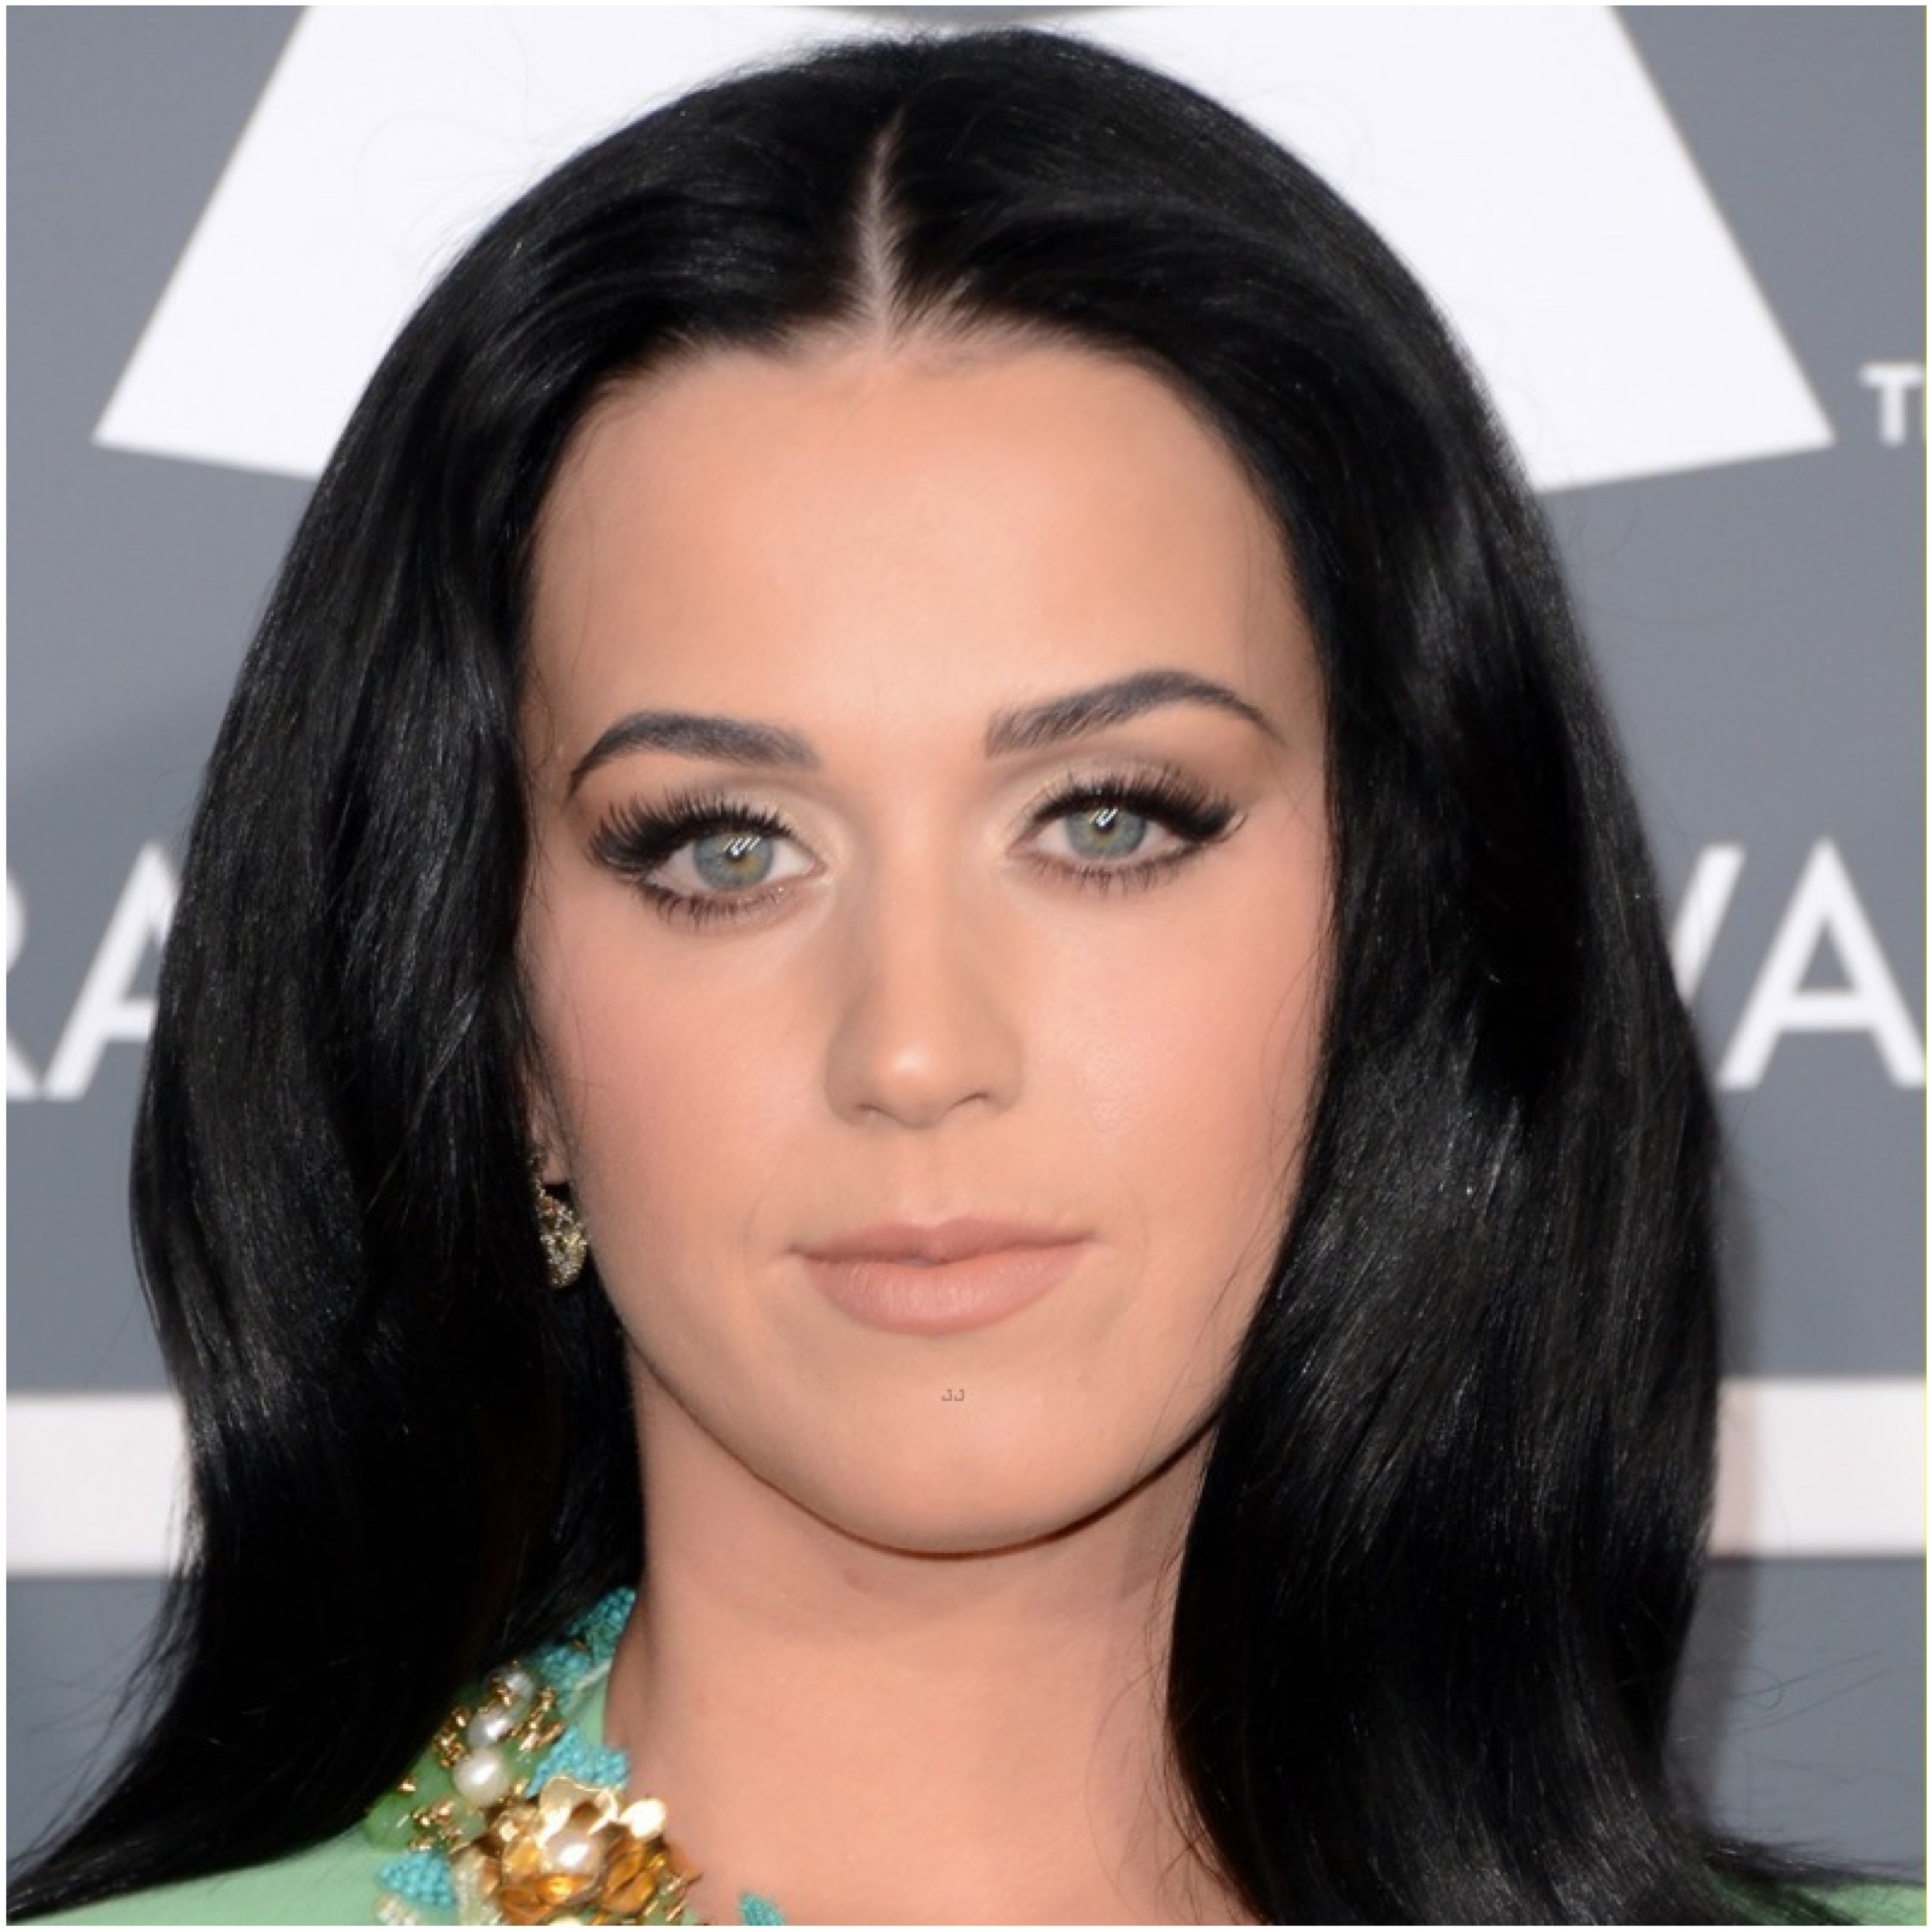 Katy Perry 2013 Grammys Hd